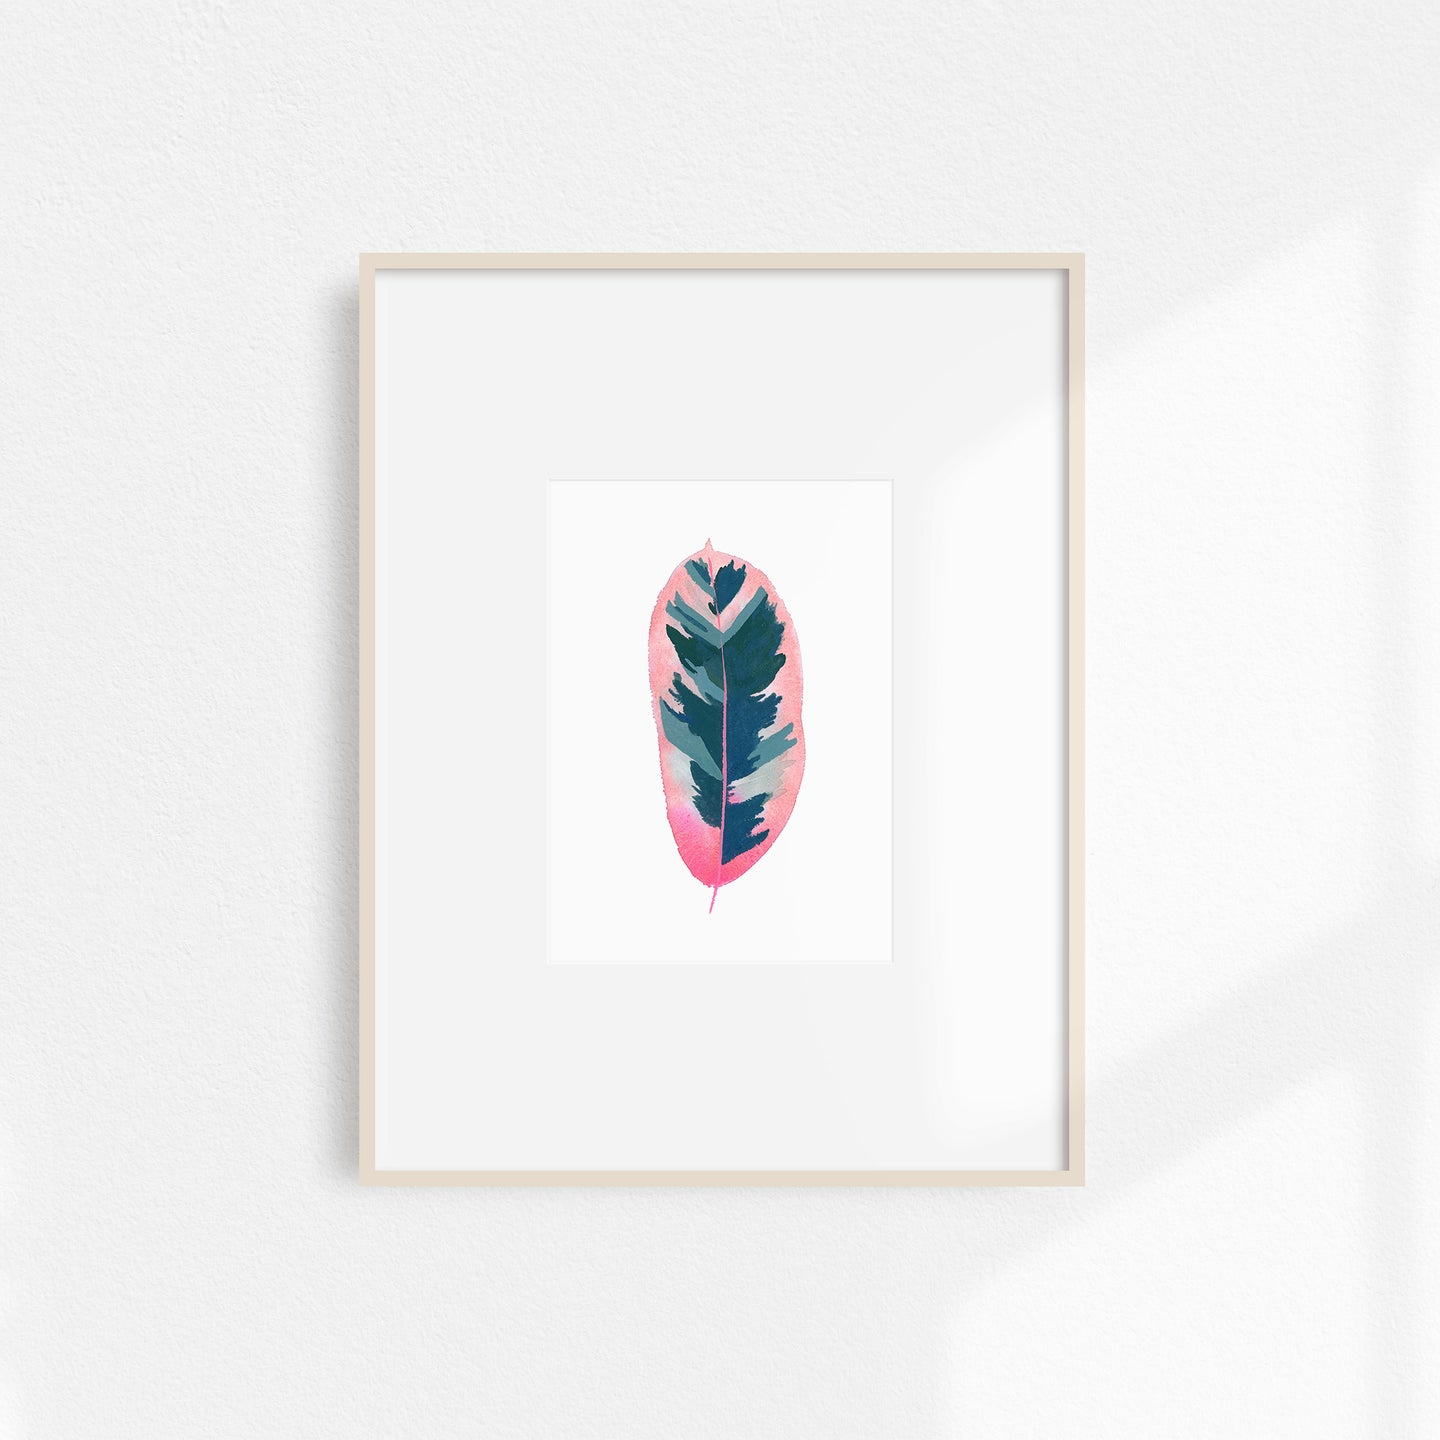 Watercolor Rubber Tree Print Small